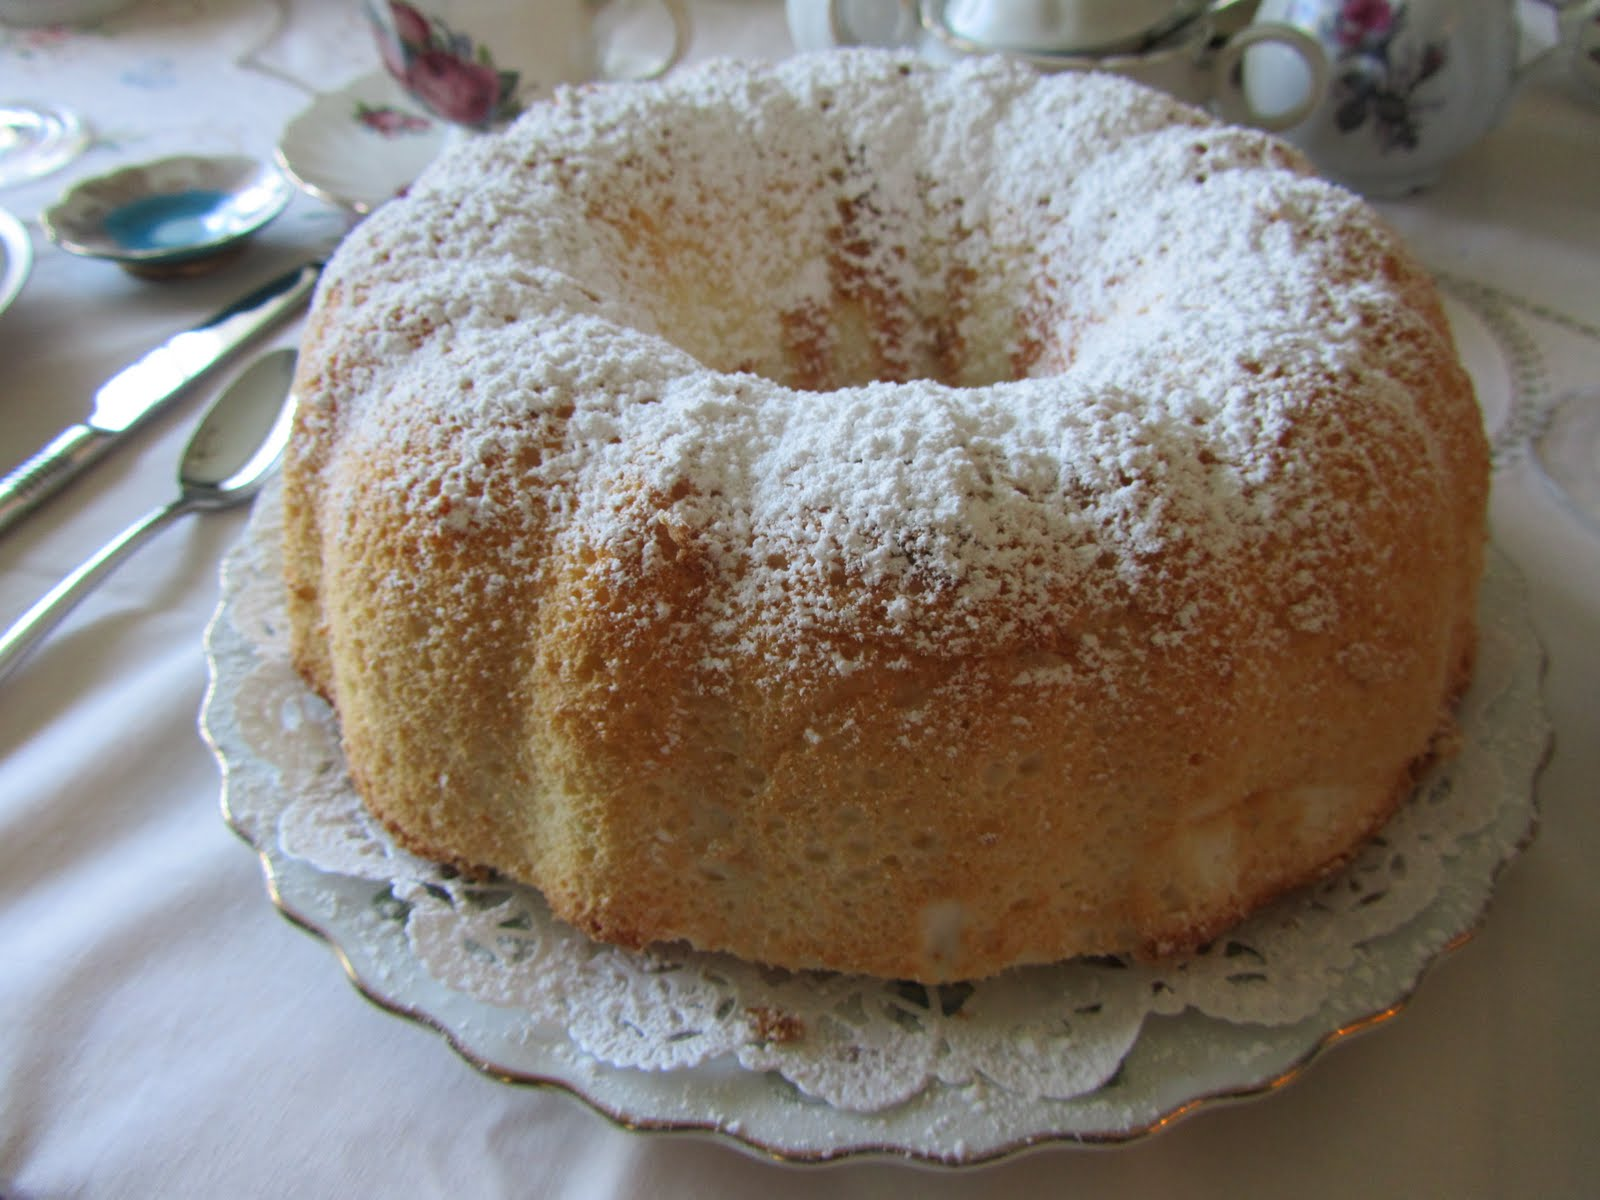 Barefoot Contessa Lemon Cake By Ina Garten Recipe — Dishmaps